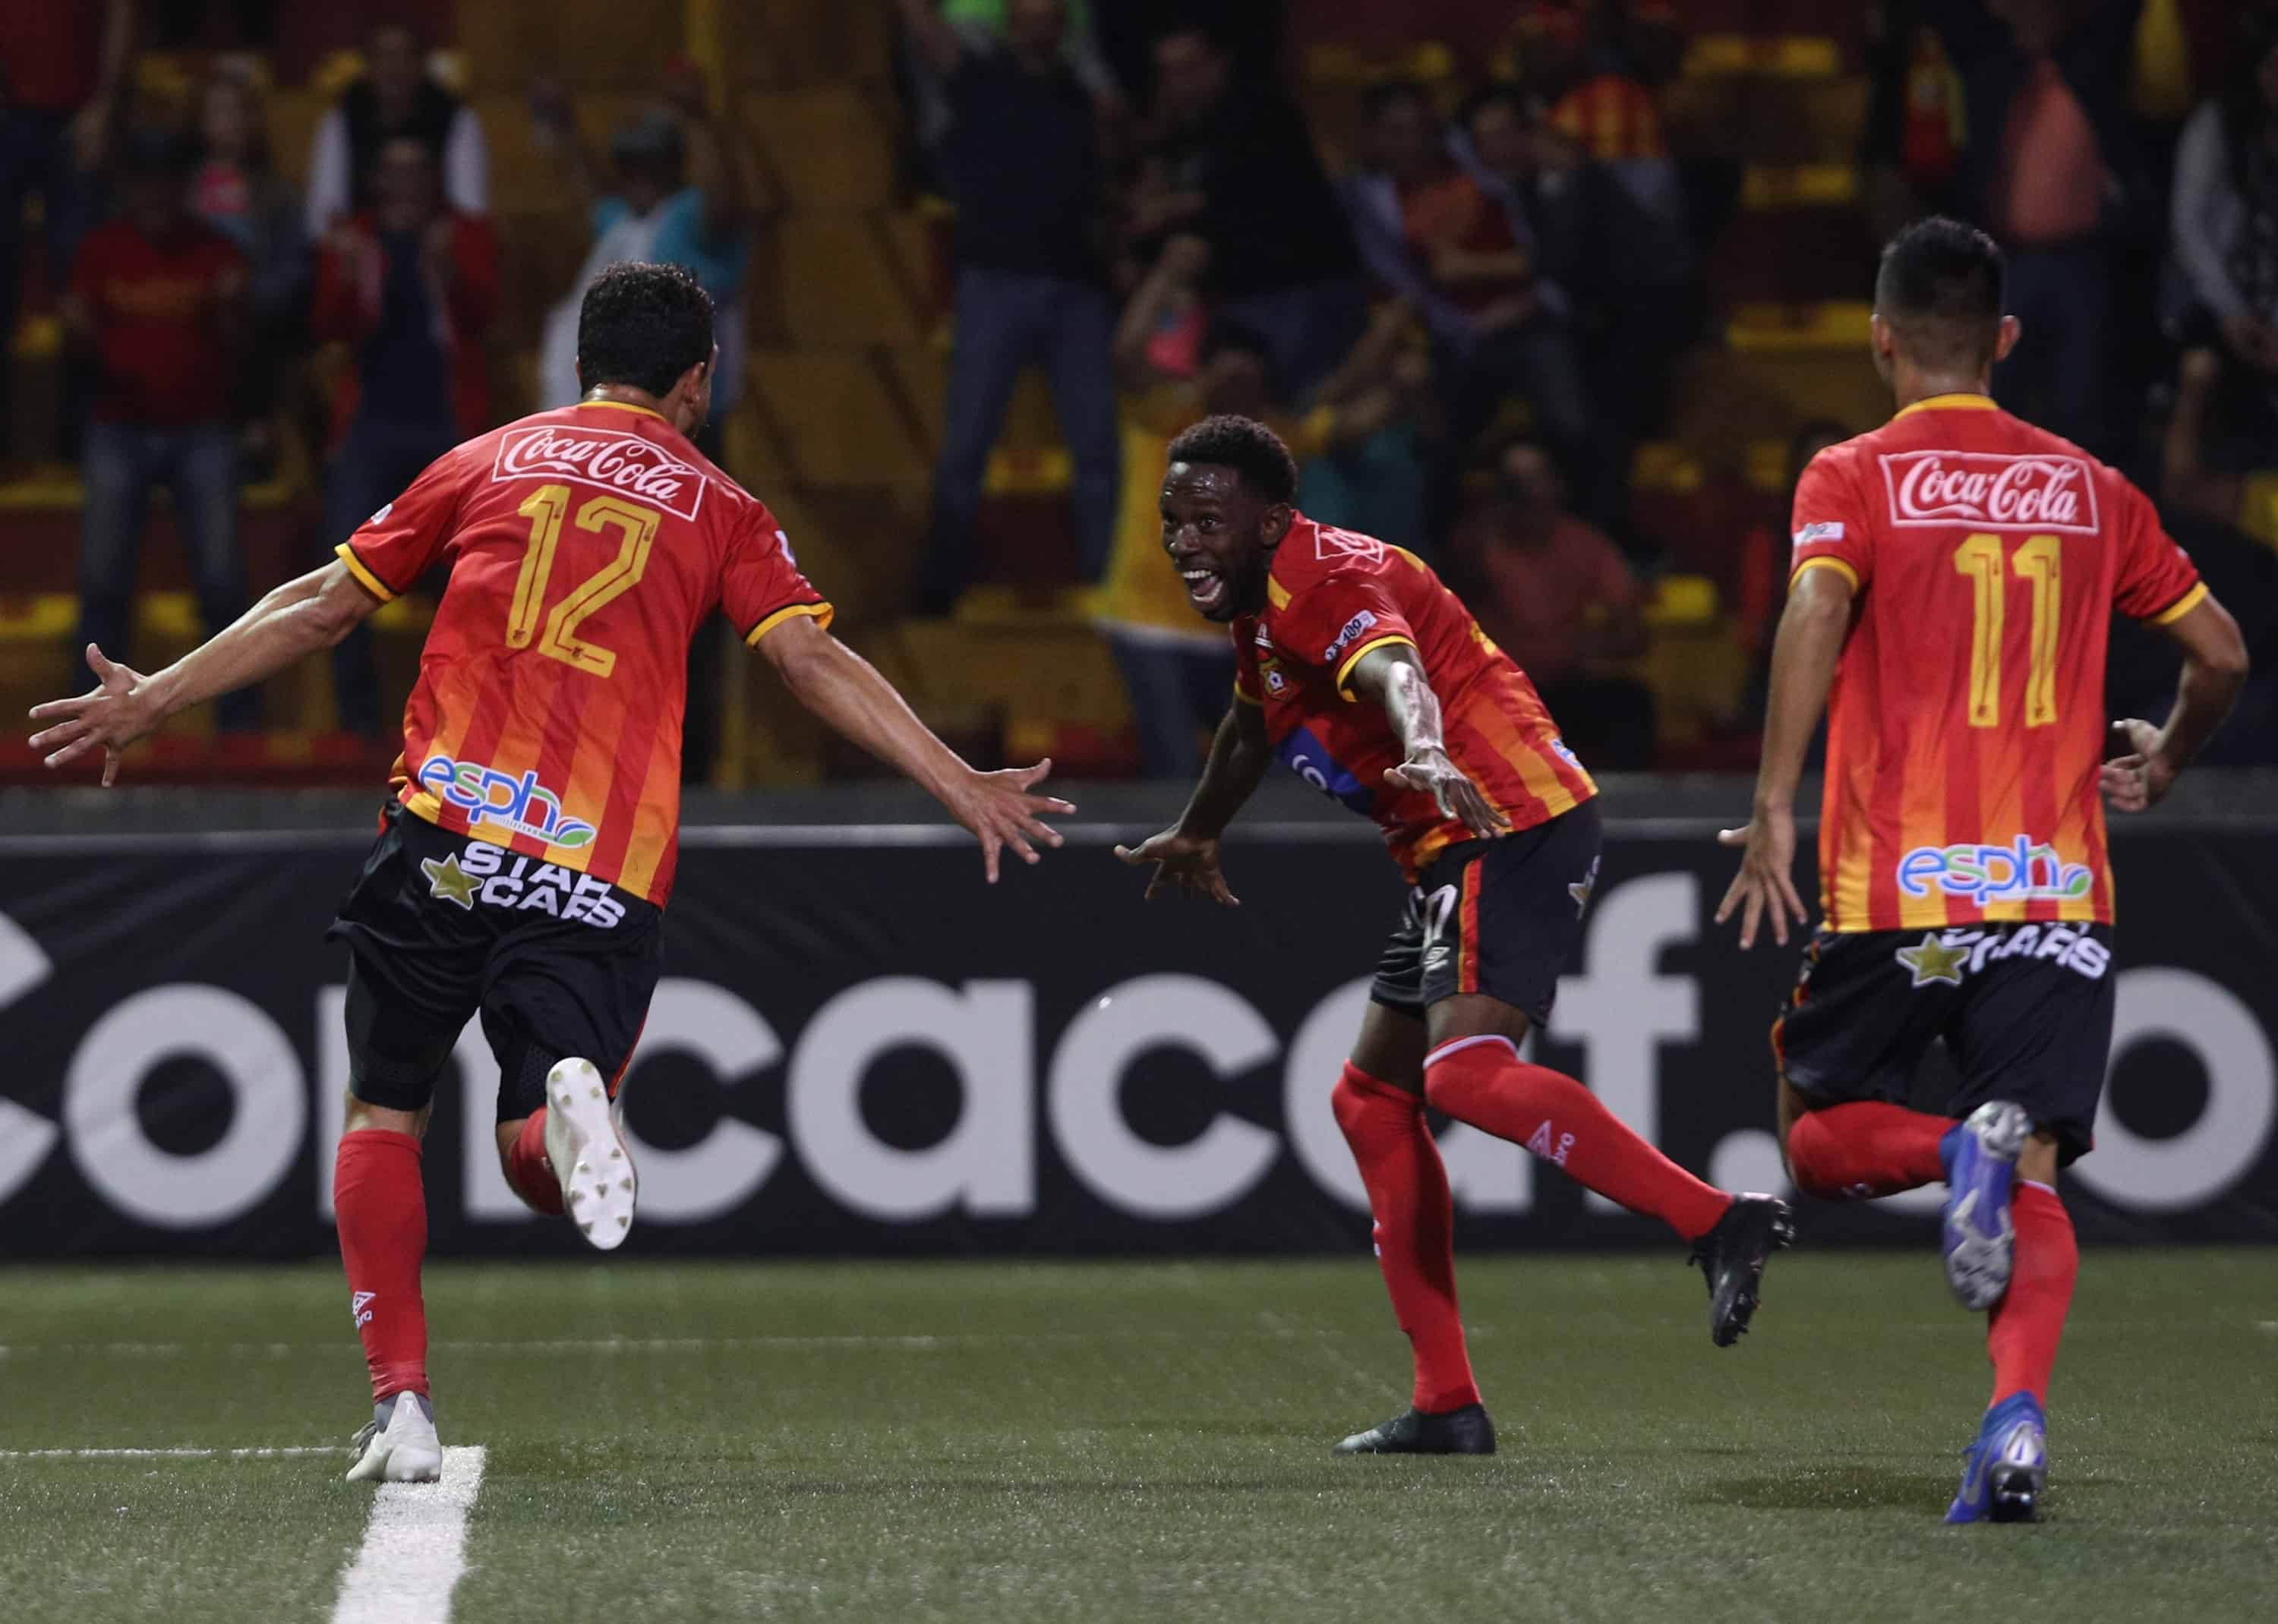 Herediano celebrates following a goal against Atlanta United FC.